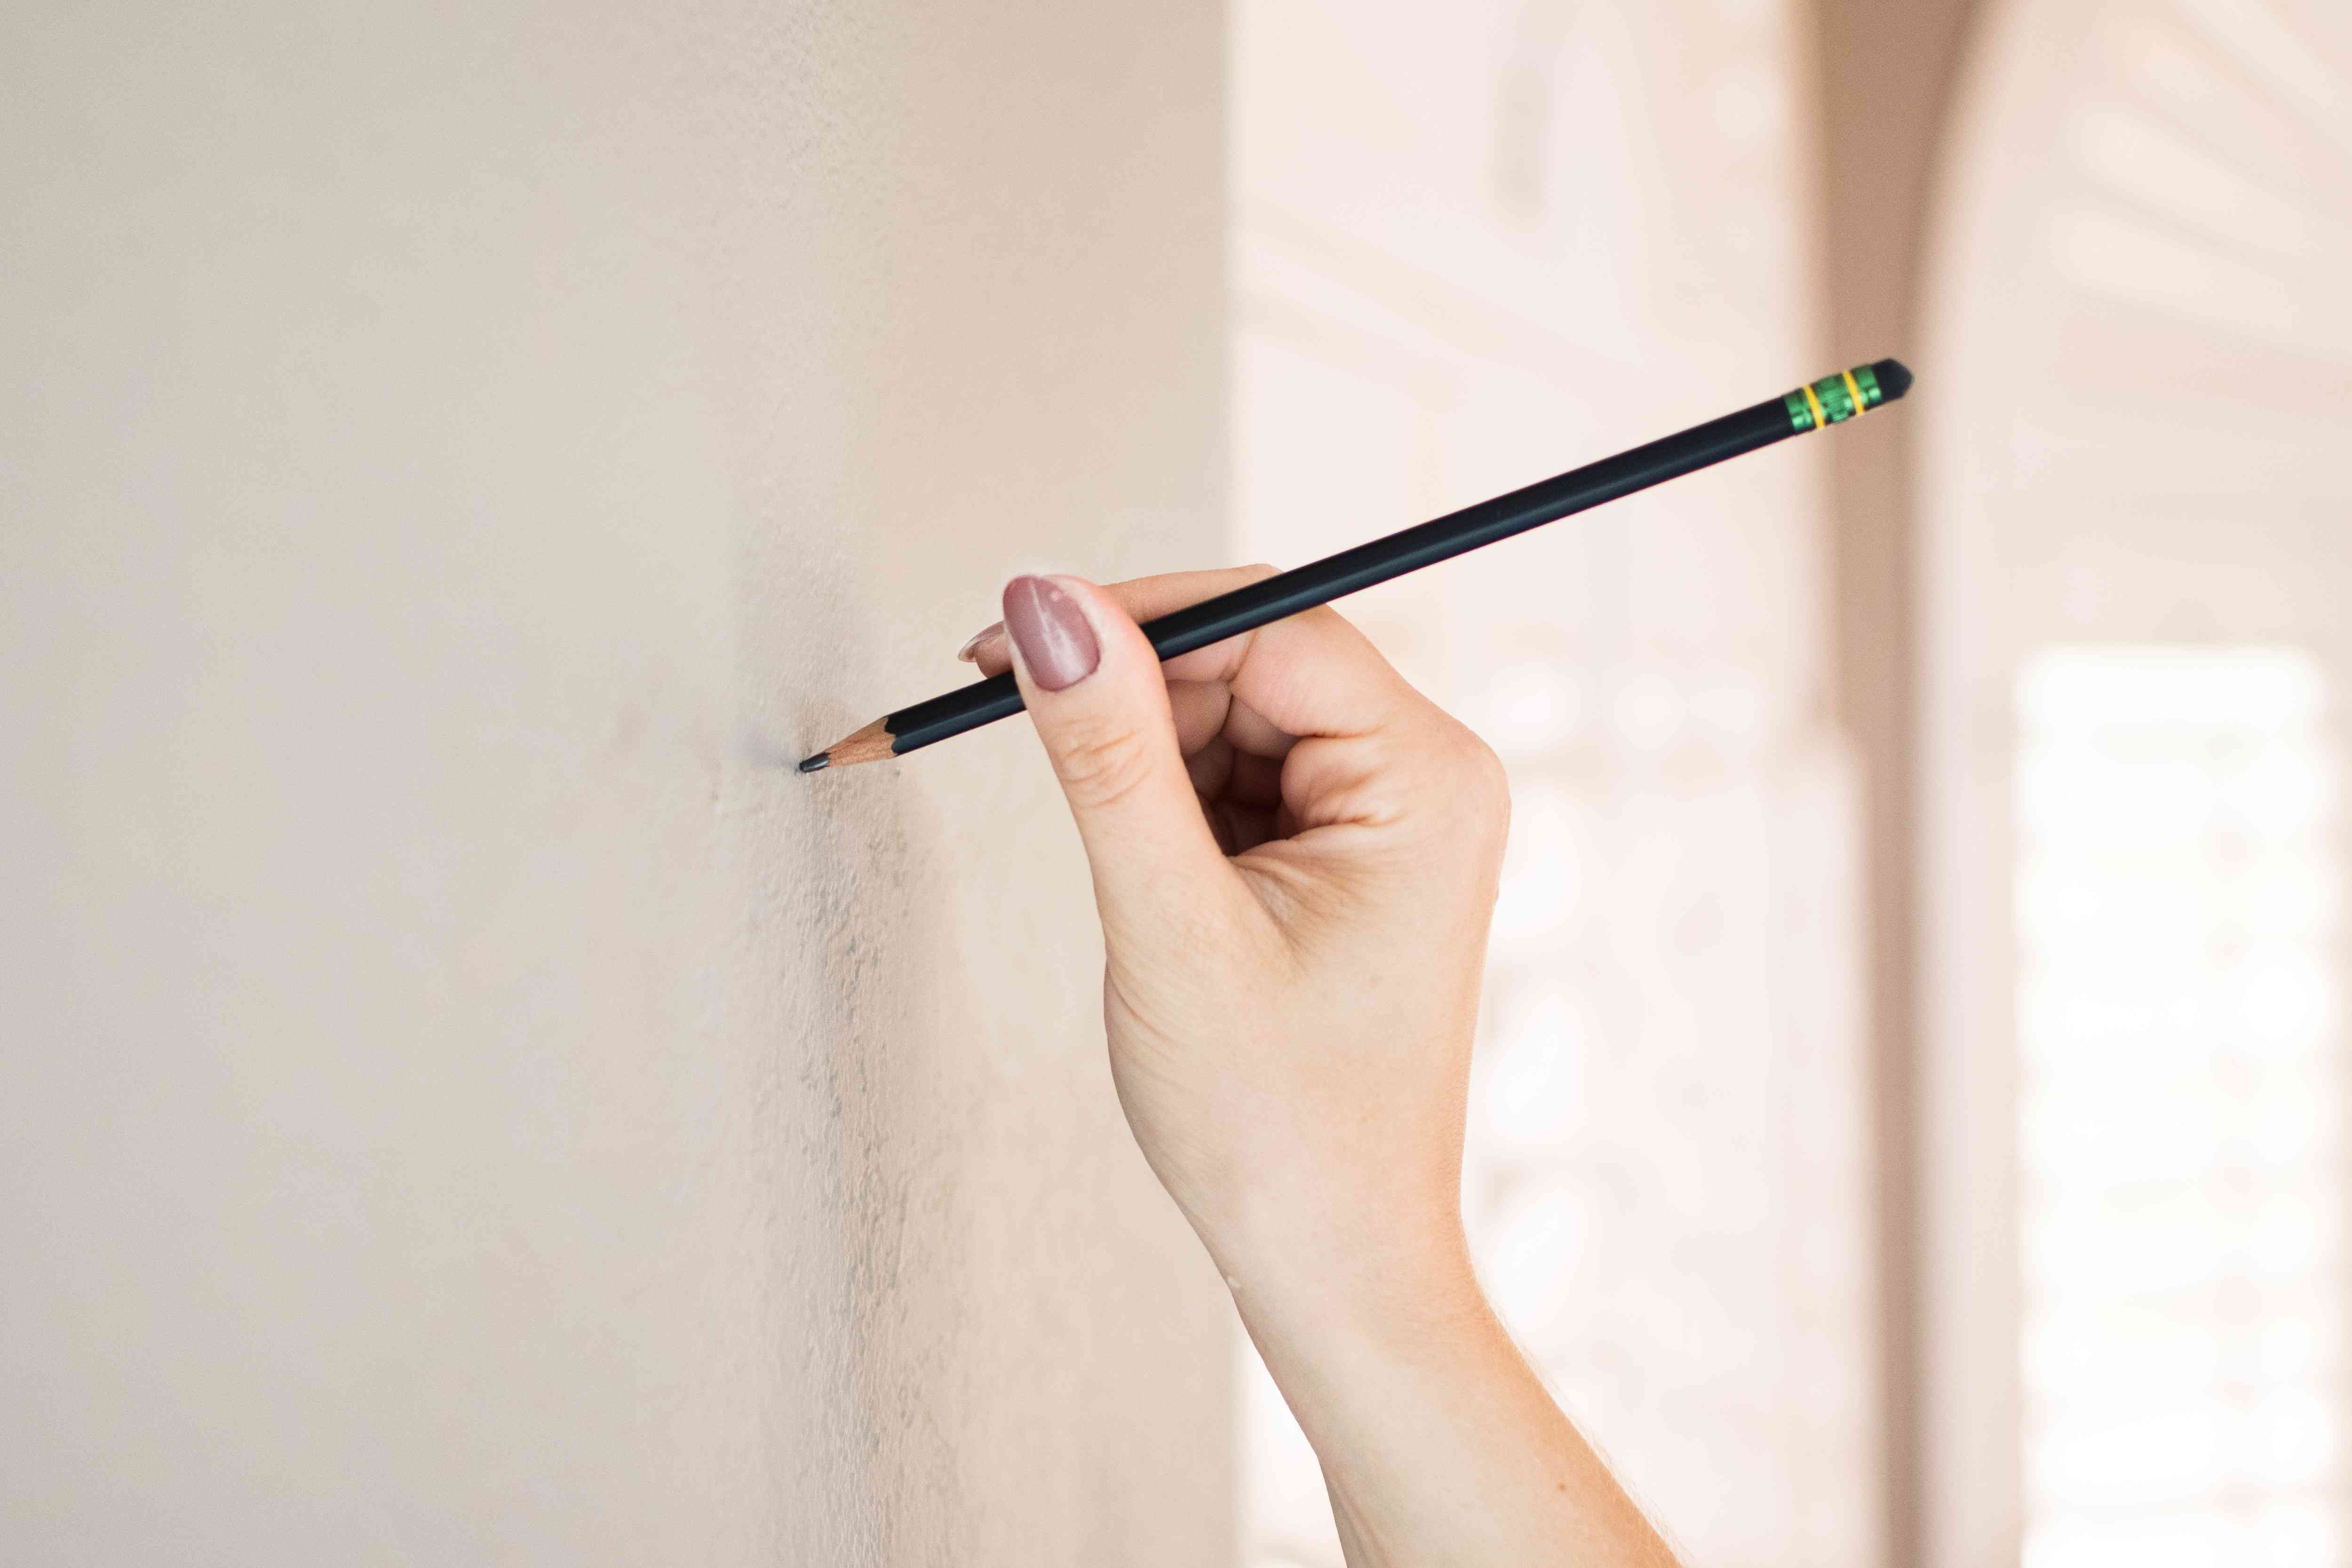 Pencil marking placement on wall for picture hanging